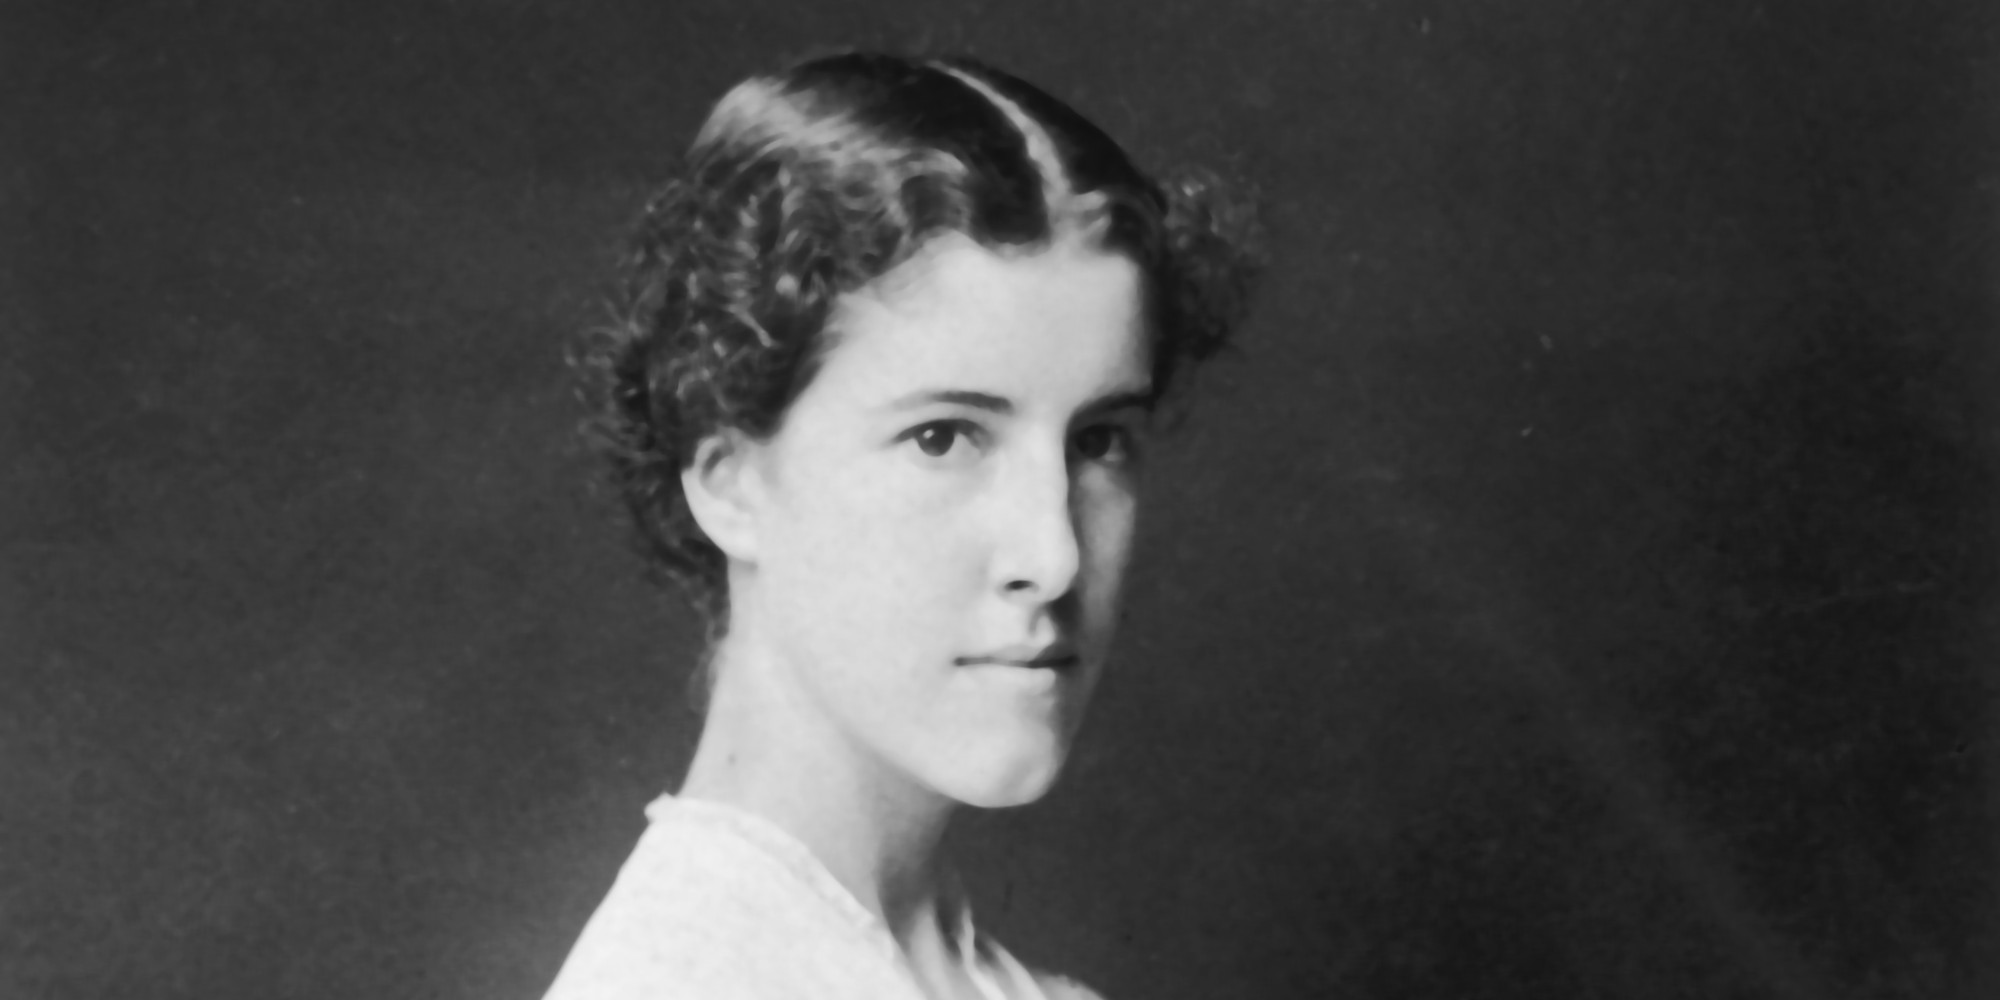 female subordination in charlotte perkins gilman Women and economics rare book for sale this first edition by charlotte perkins gilman, charlotte perkins stetson is available at bauman rare books.